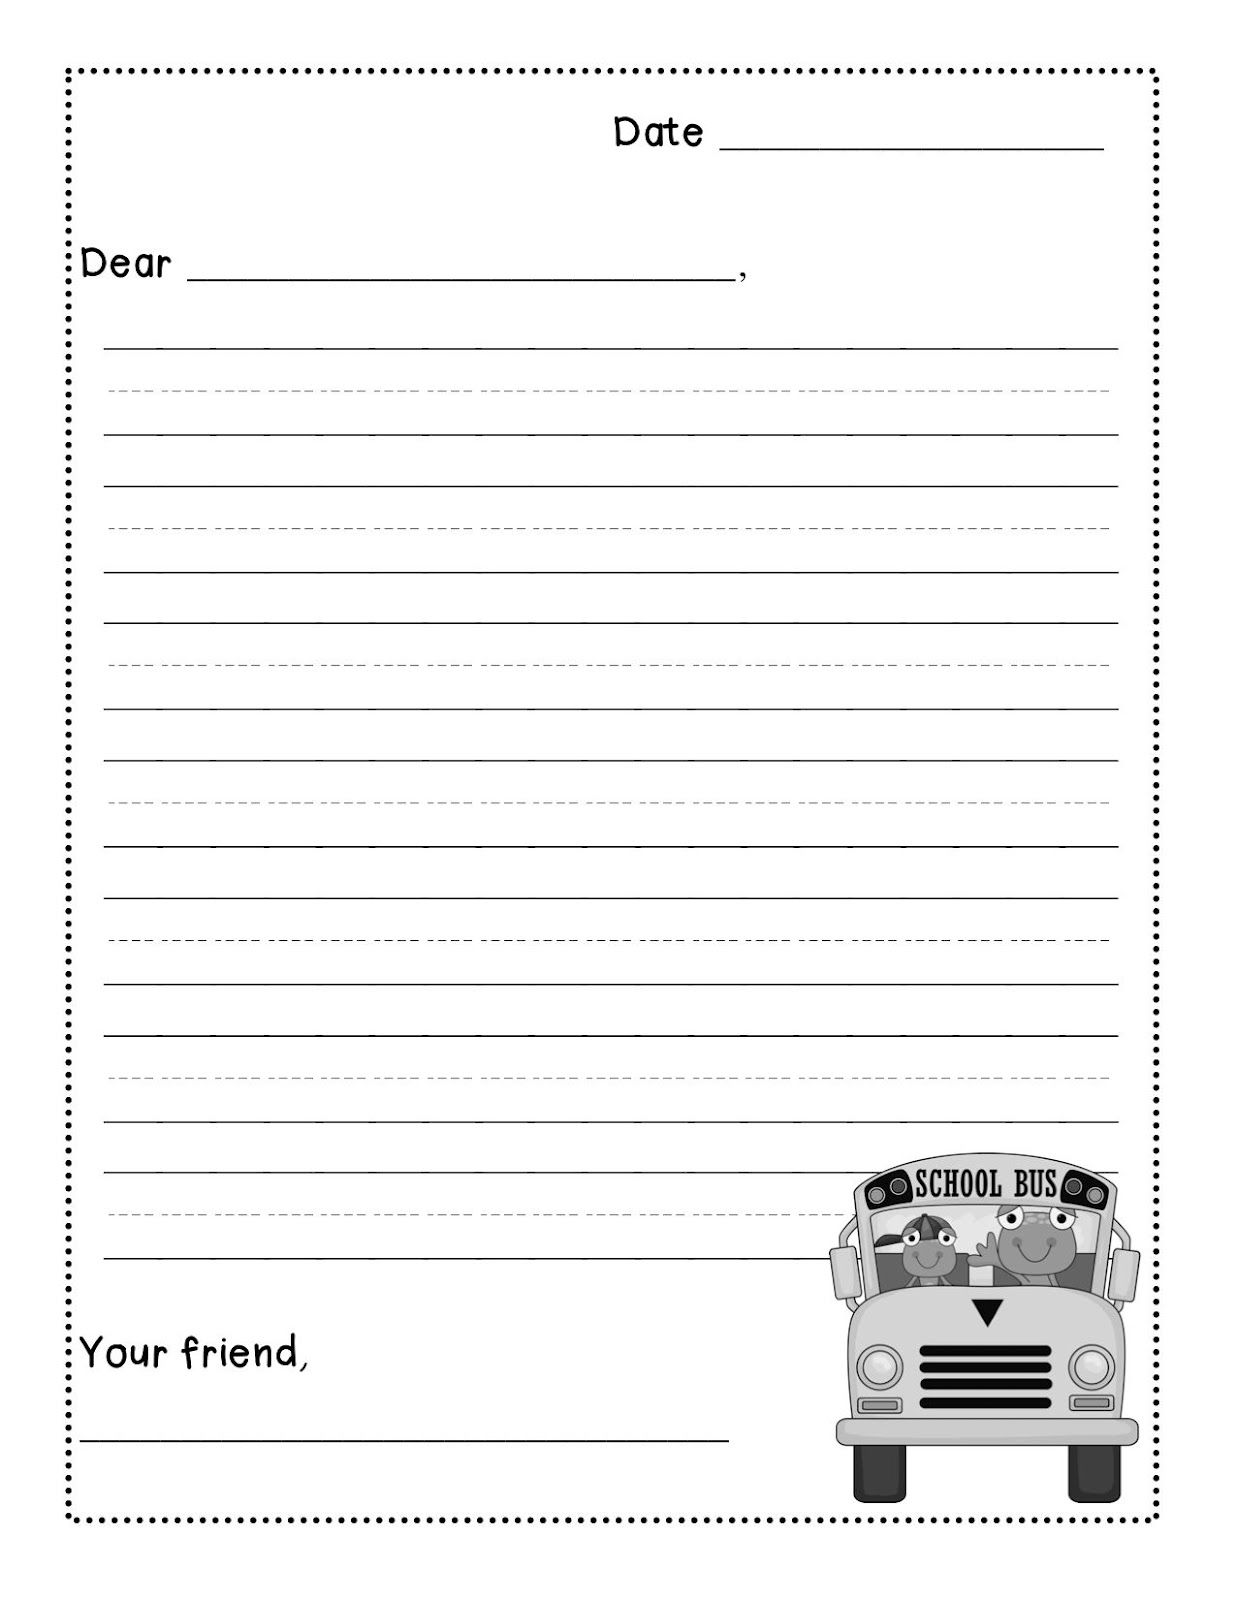 Friendly letter writing freebie levelized templates up for grabs friendly letter writing freebie levelized templates up for grabs spiritdancerdesigns Choice Image